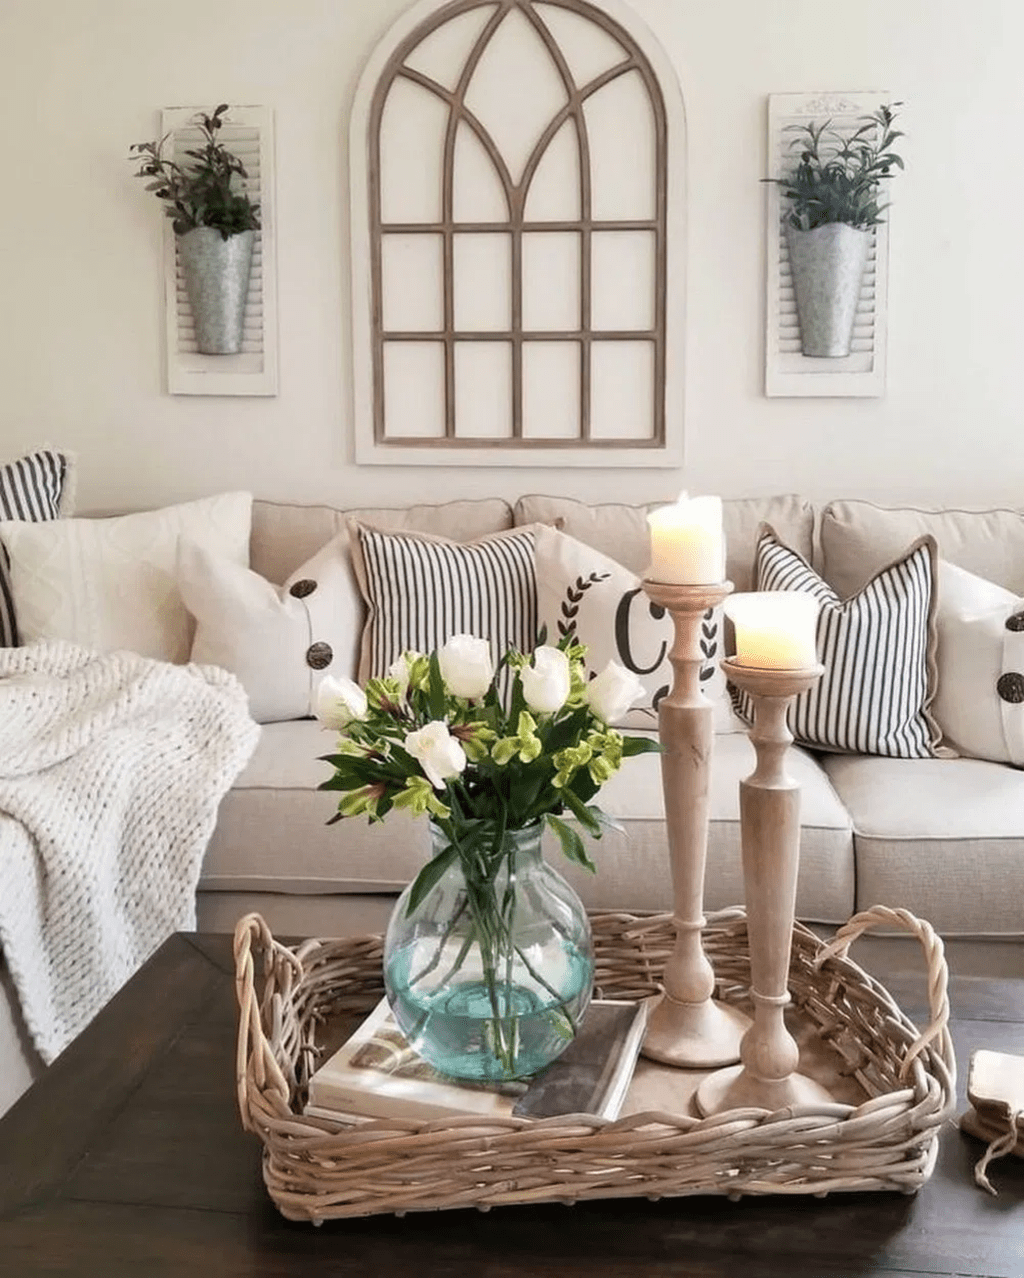 Inspiring Beachy Farmhouse Living Room Decor Ideas 21